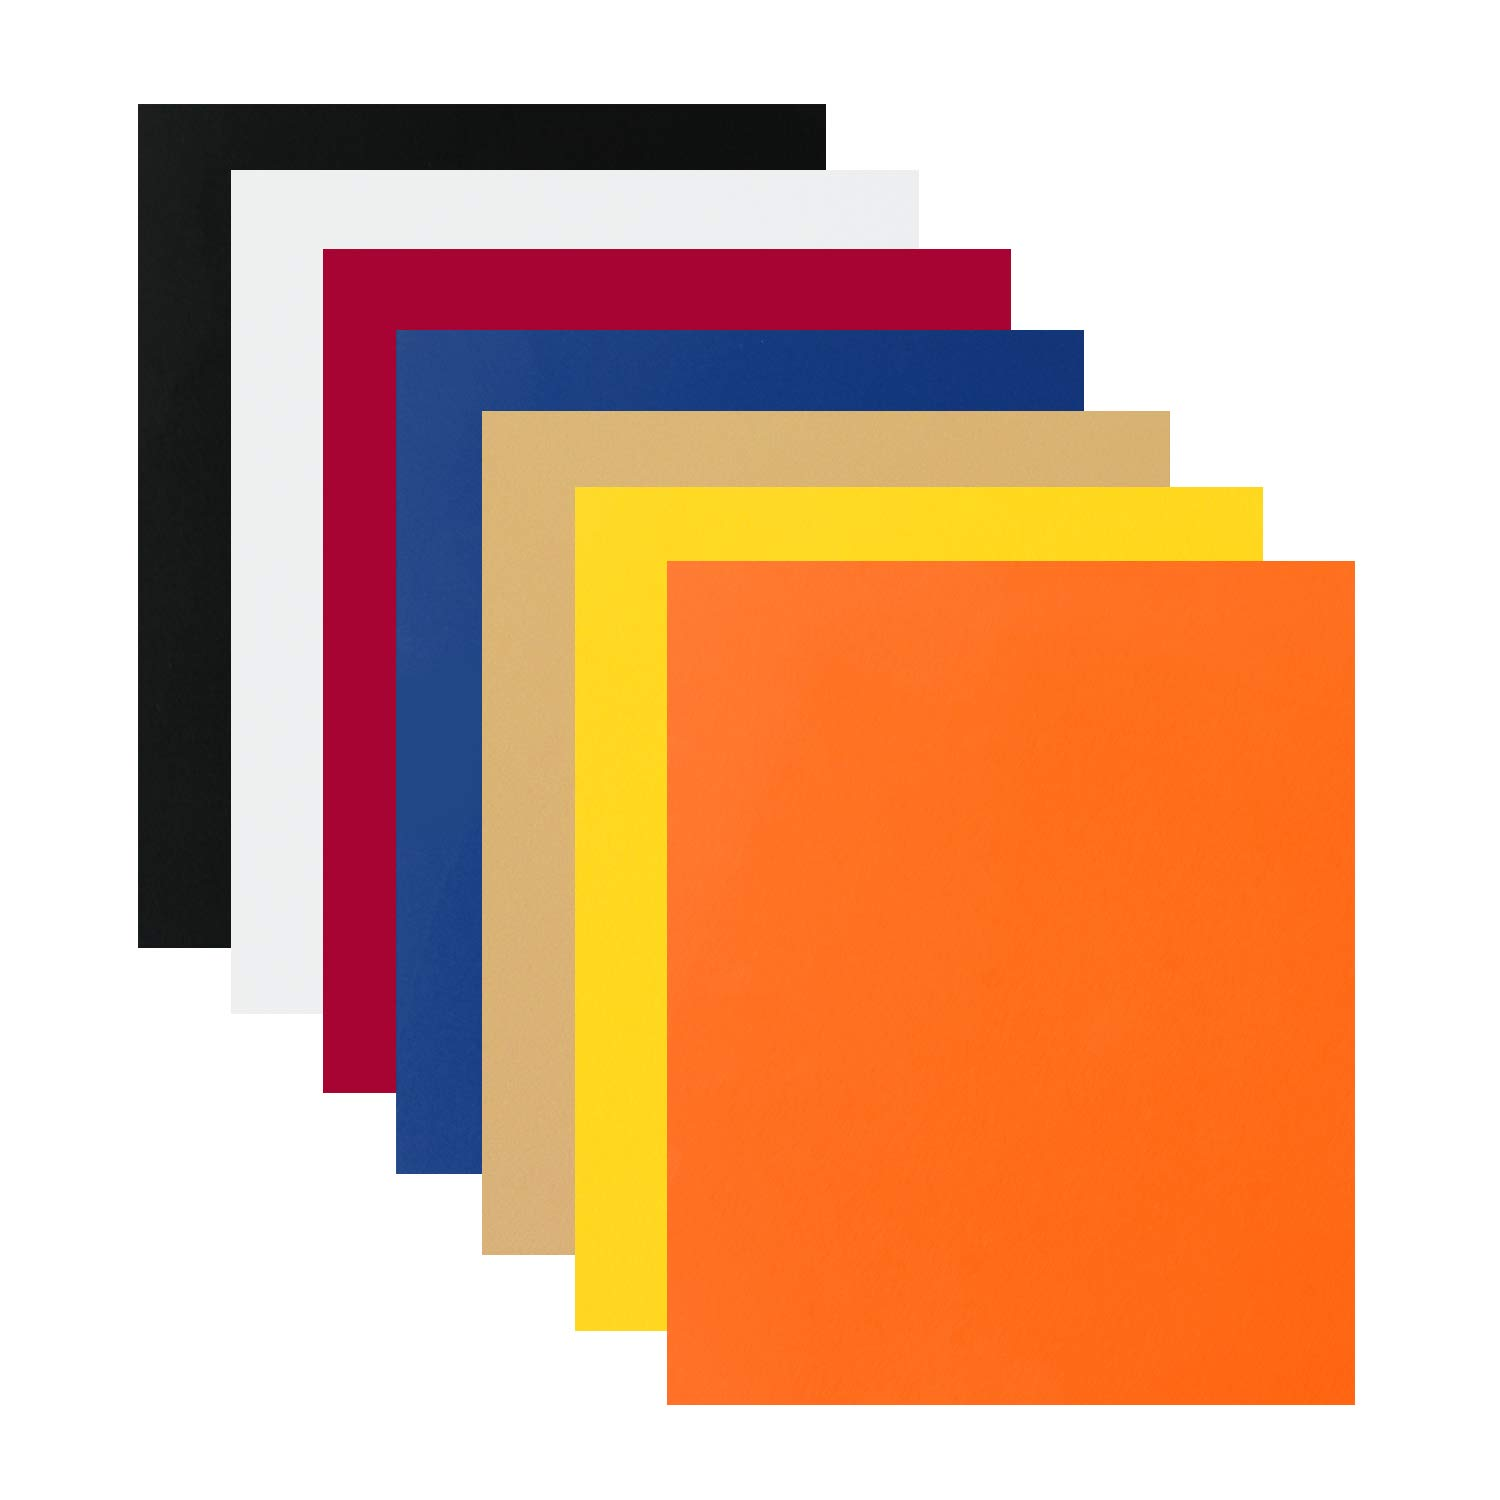 7 Sheets Flock Heat Transfer Vinyl Iron On T-Shirts 7 Assorted Colors HTV 12x10' by 7 for DIY Garment VINYL FROG